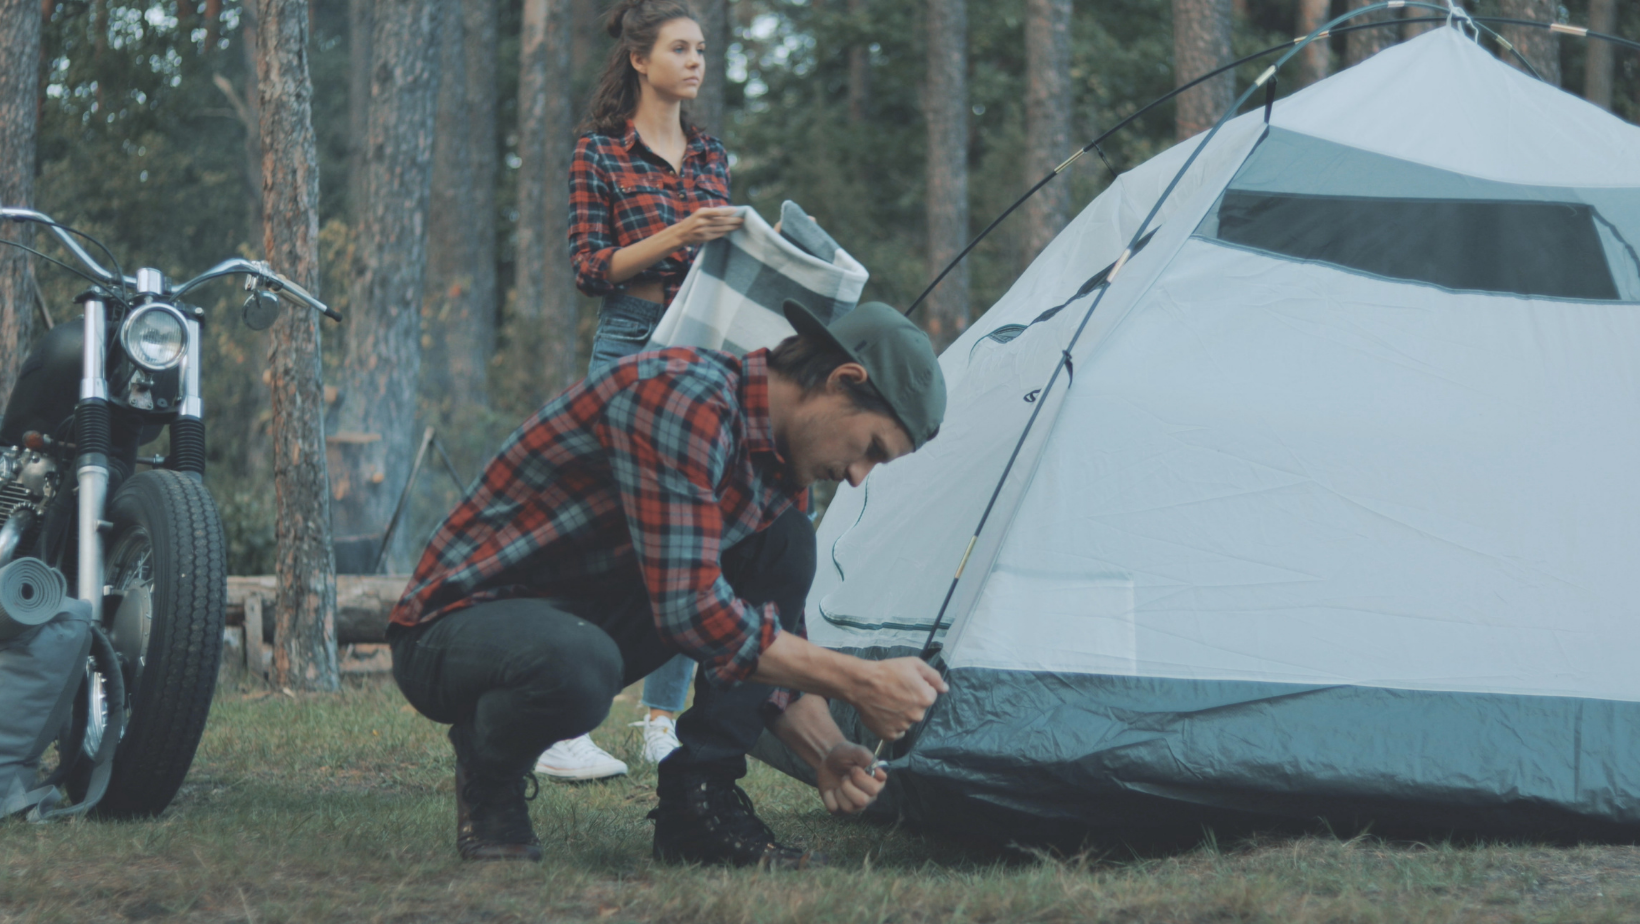 Setting up tent during camping